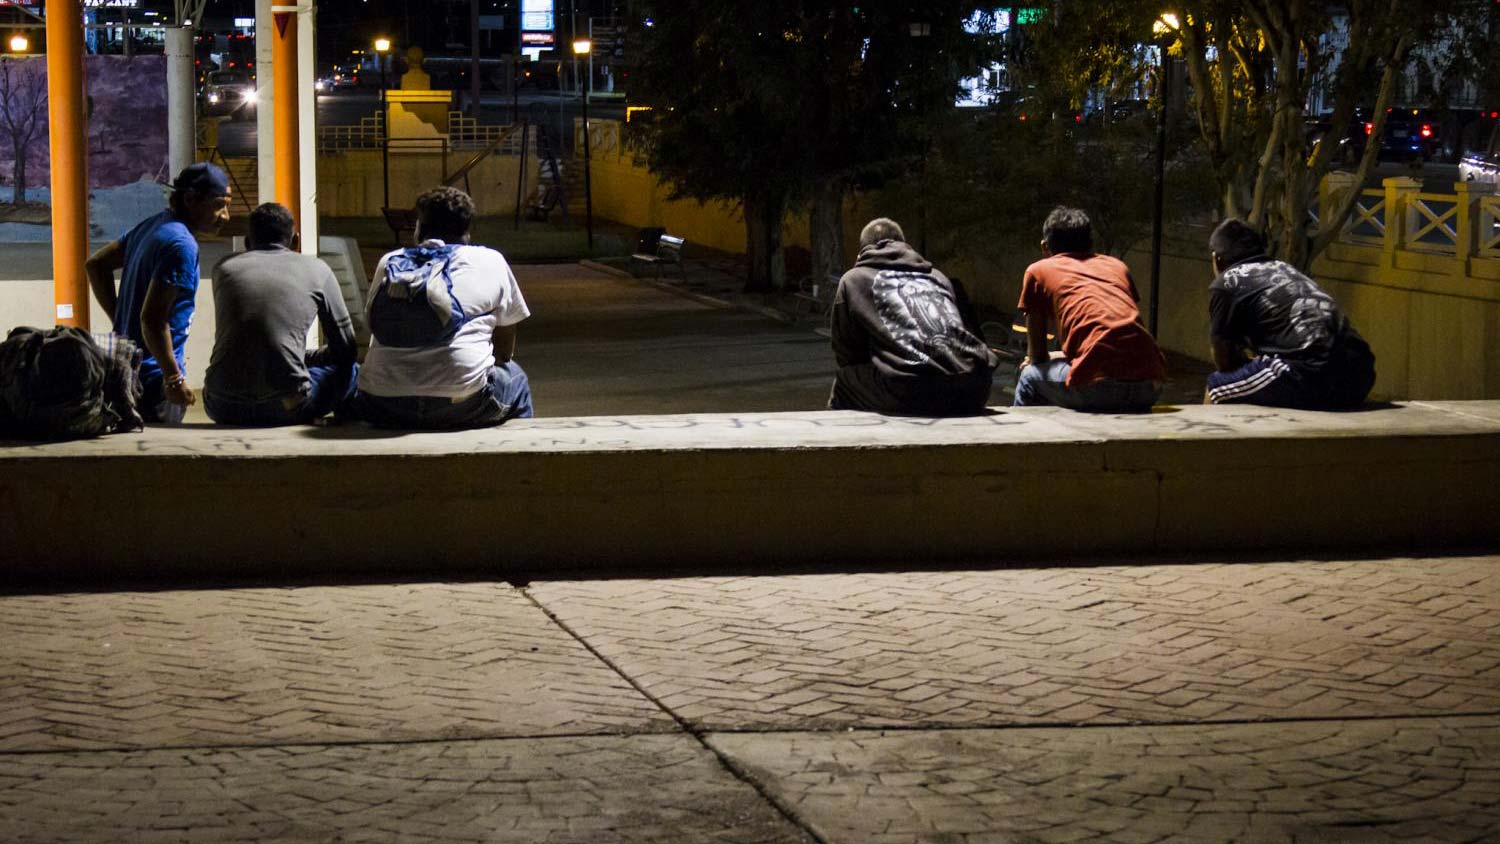 Honduran migrants hang out in a central plaza in Sonoyta, Mexico, across the border from Lukeville, Arizona.